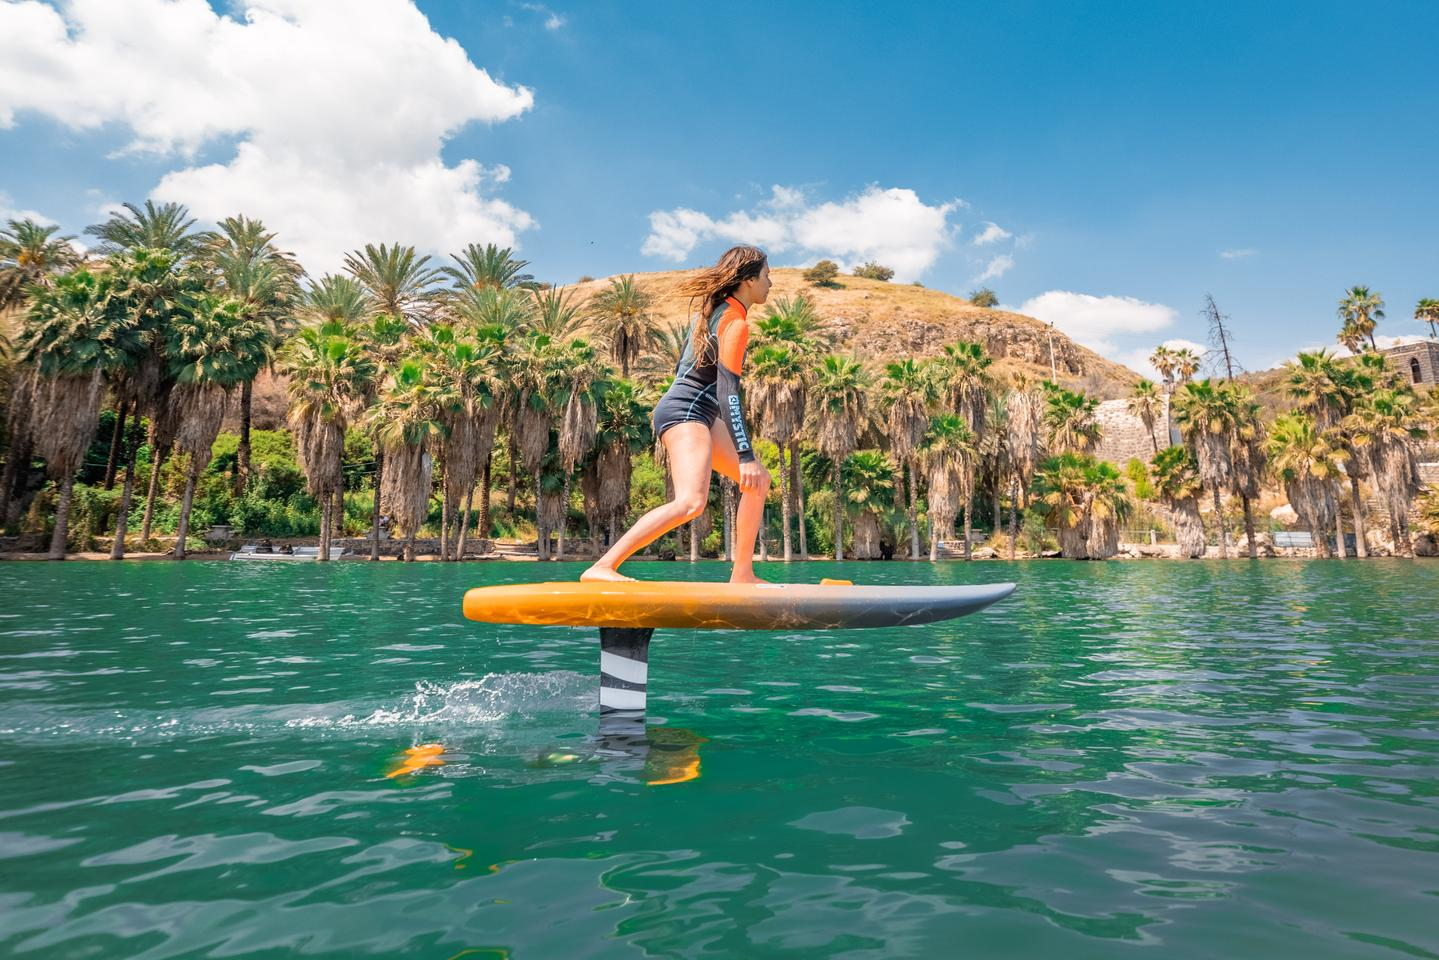 The Level Board is a single-mast hydrofoil with a subsurface wing that lifts the board up out of the water as it picks up speed